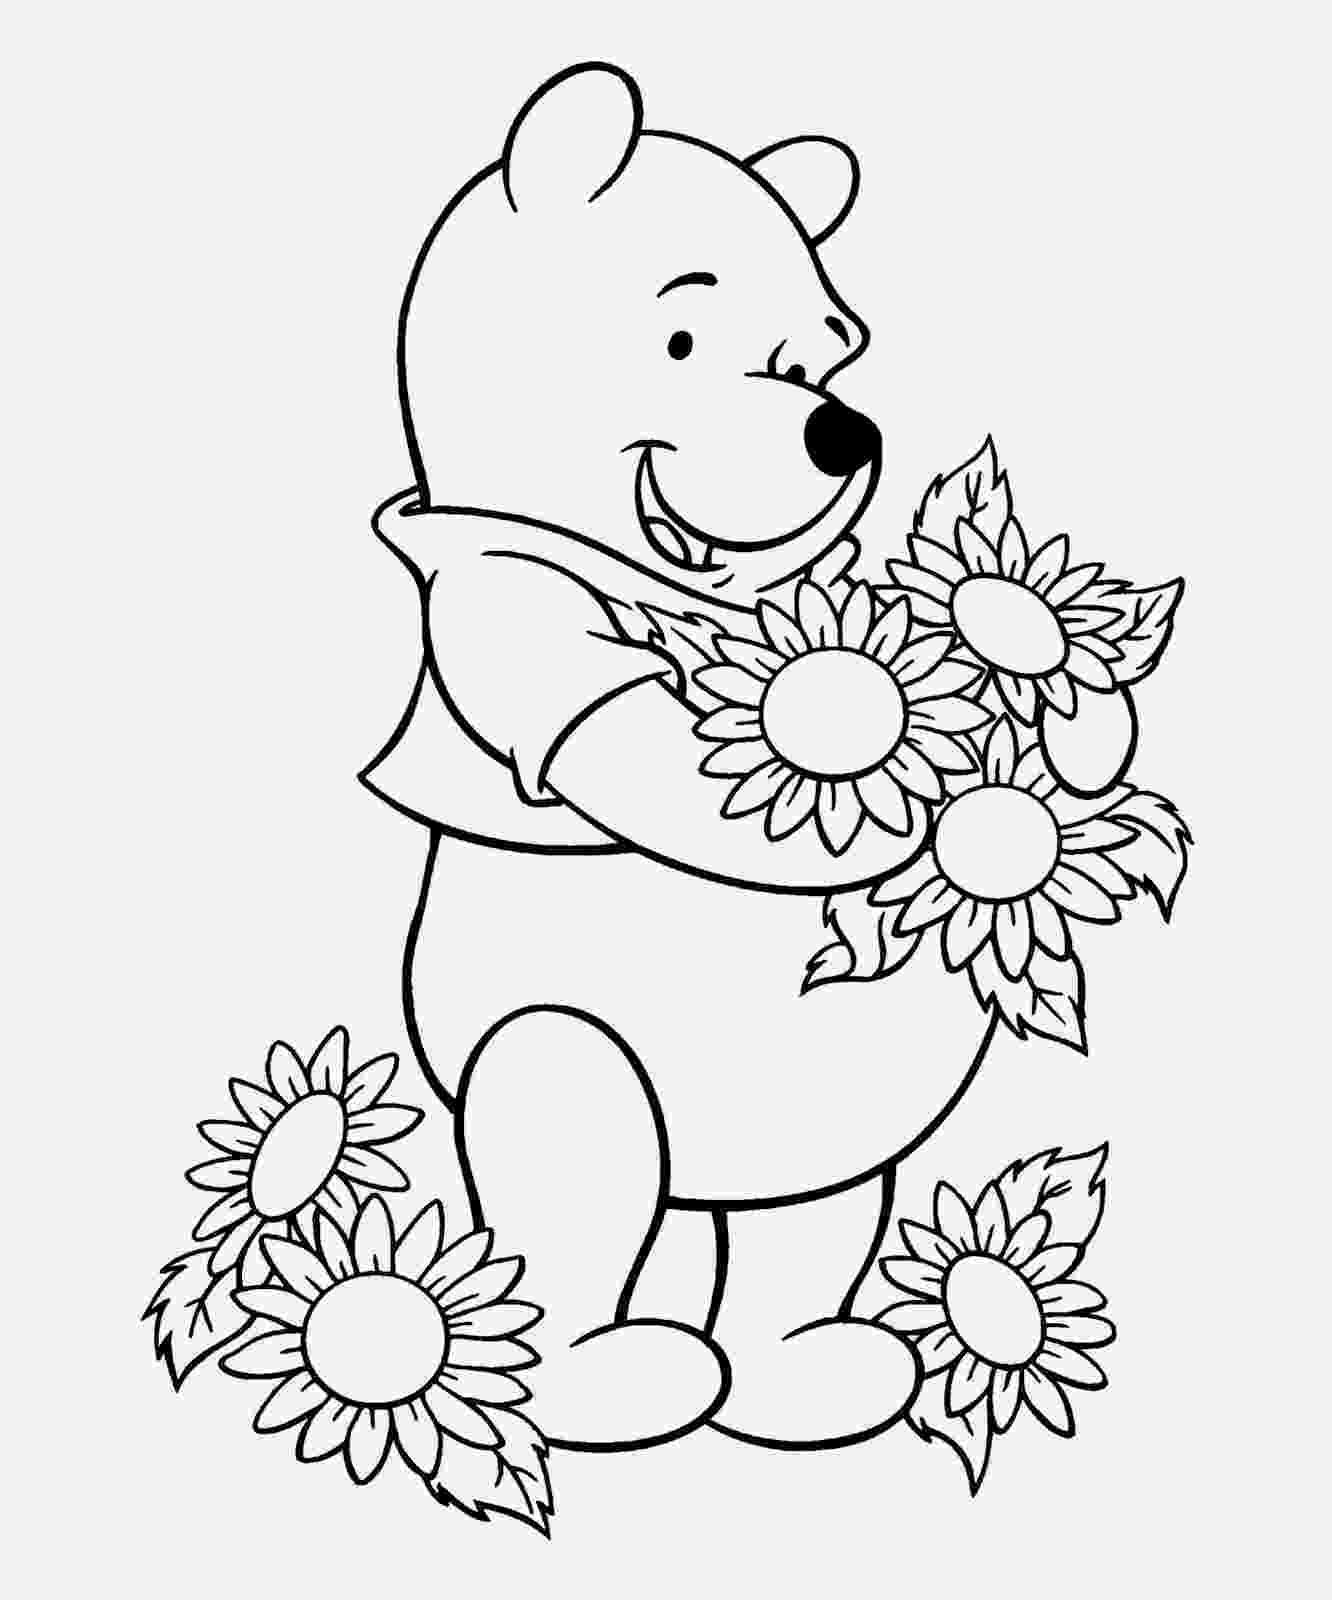 winnie the pooh printable coloring pages winnie the pooh coloring page minister coloring pages coloring printable winnie the pooh